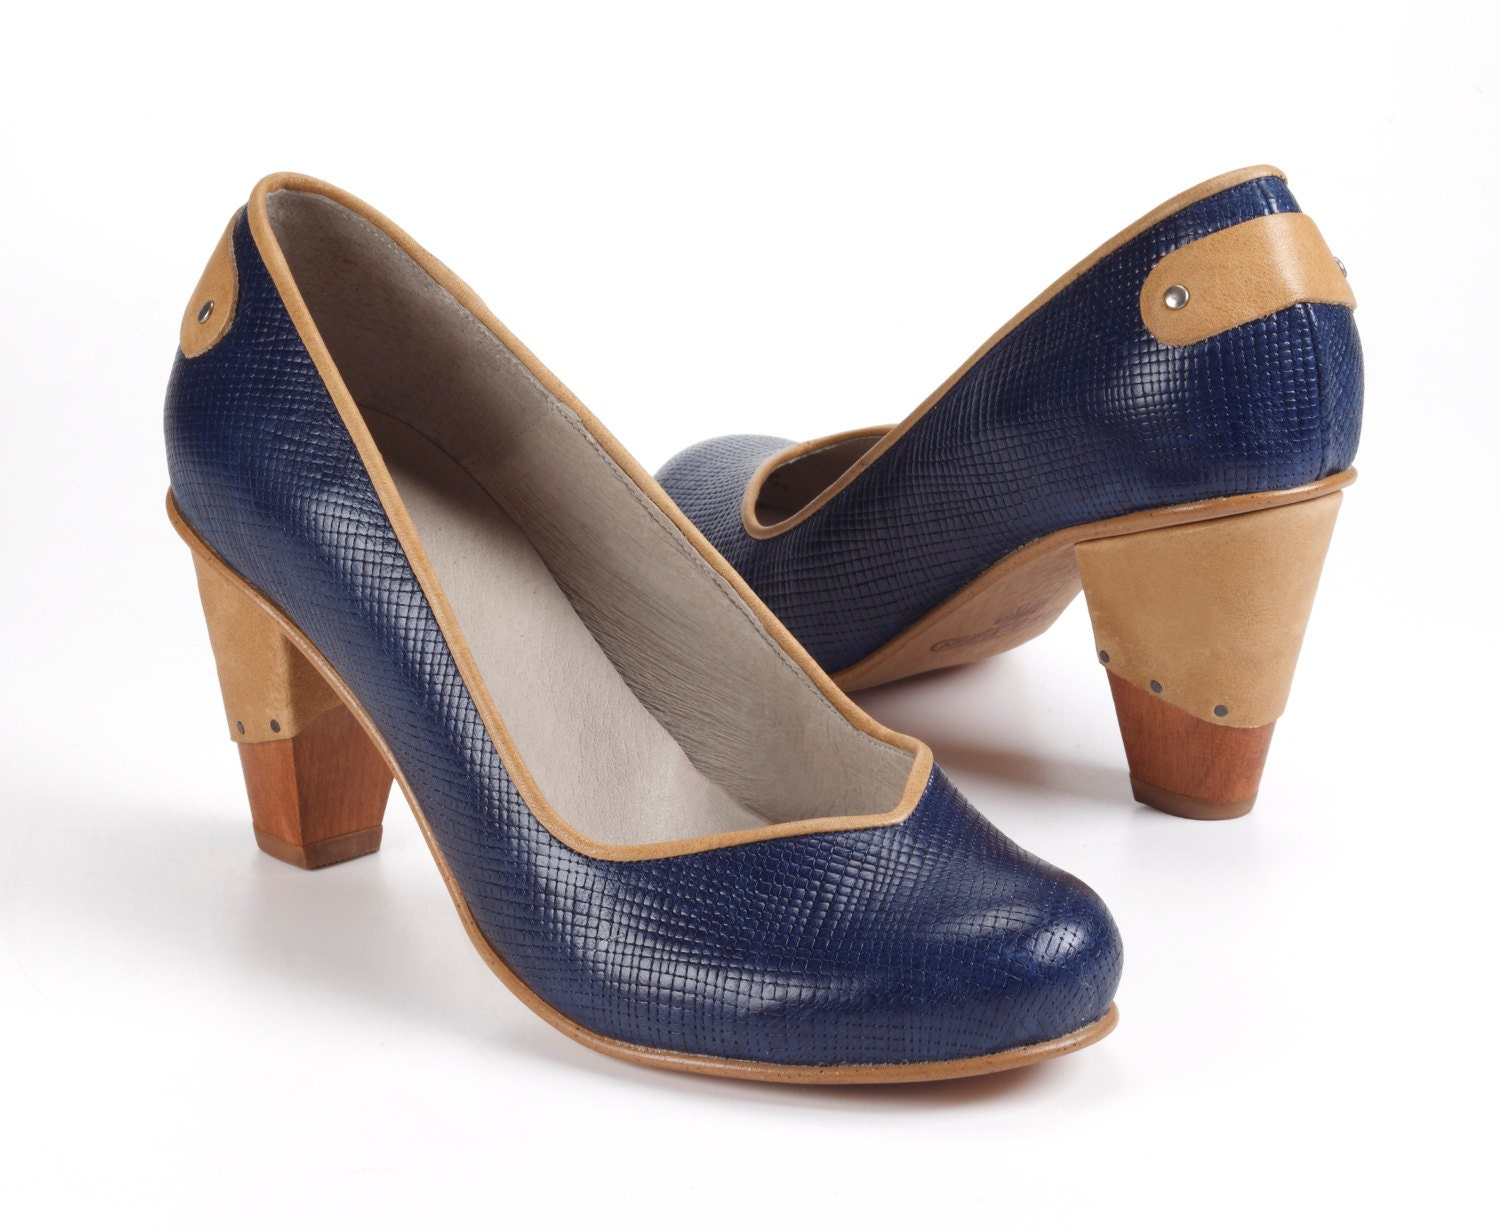 Find great deals on eBay for navy blue women shoes. Shop with confidence.